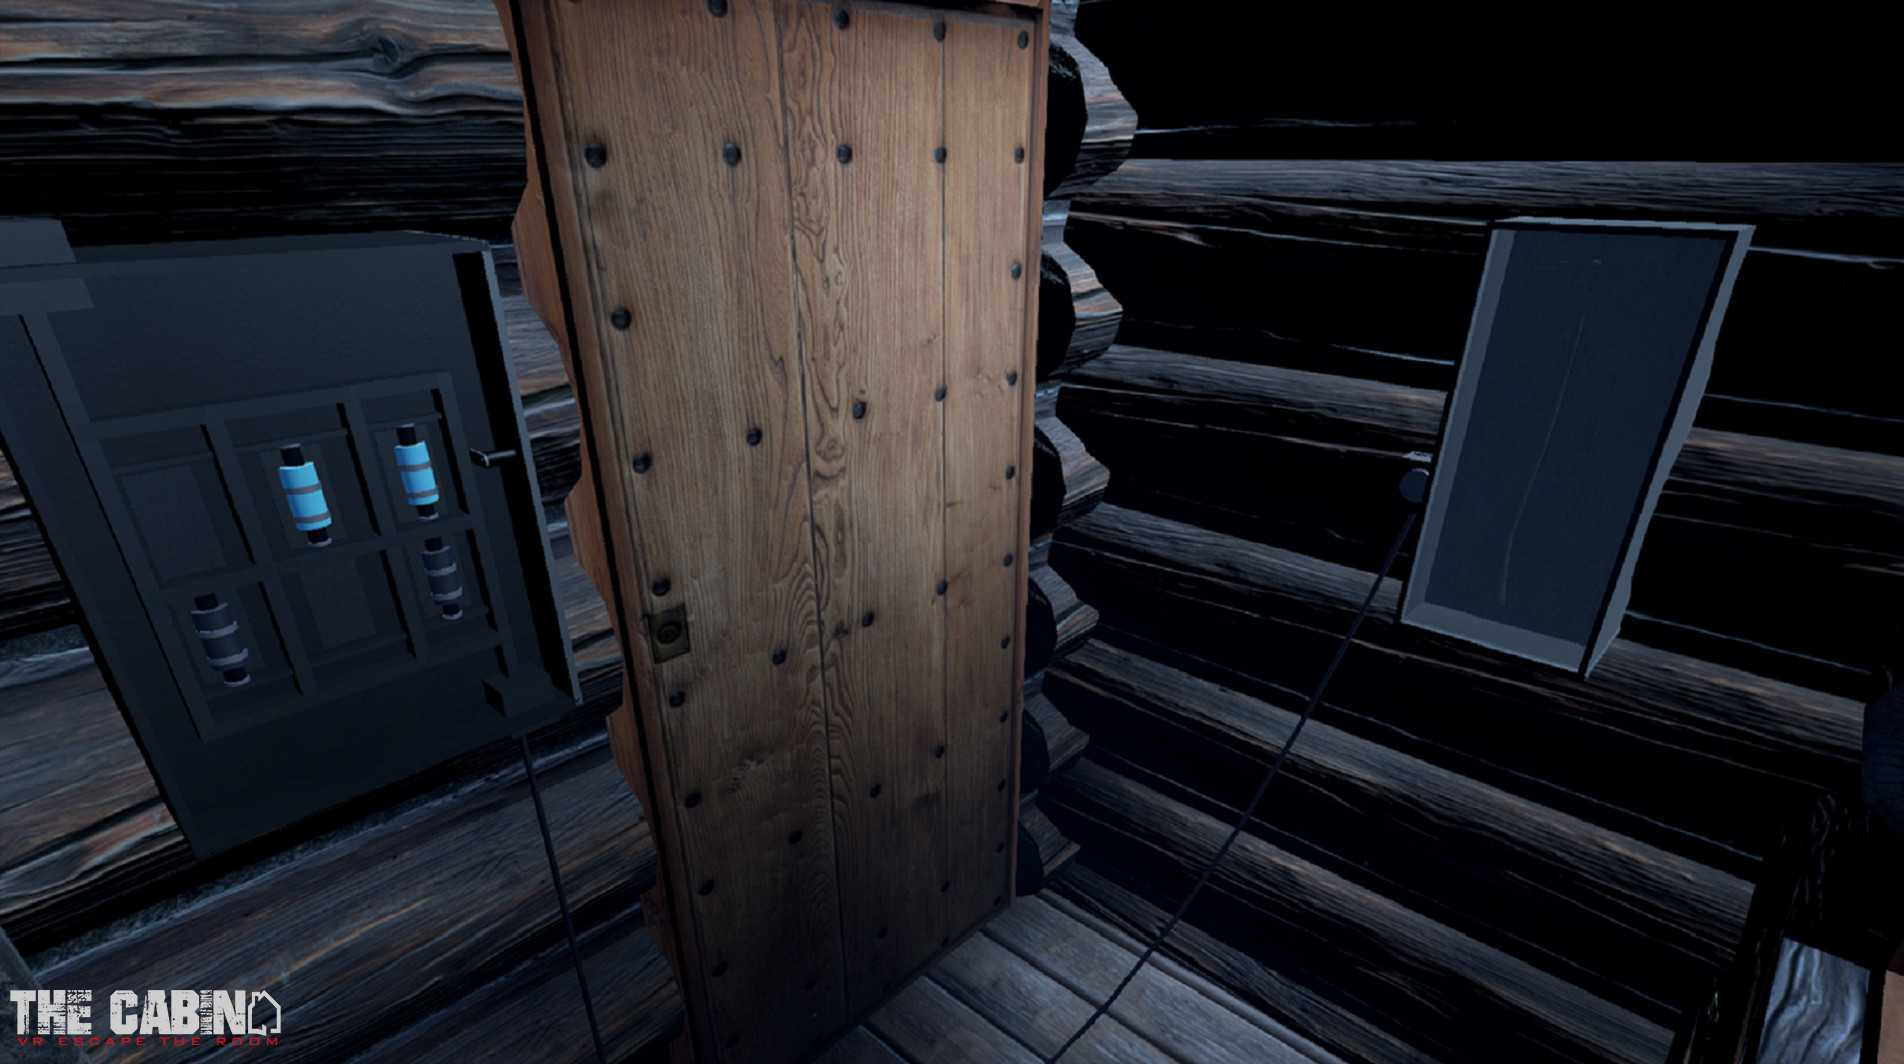 The Cabin: VR Escape the Room